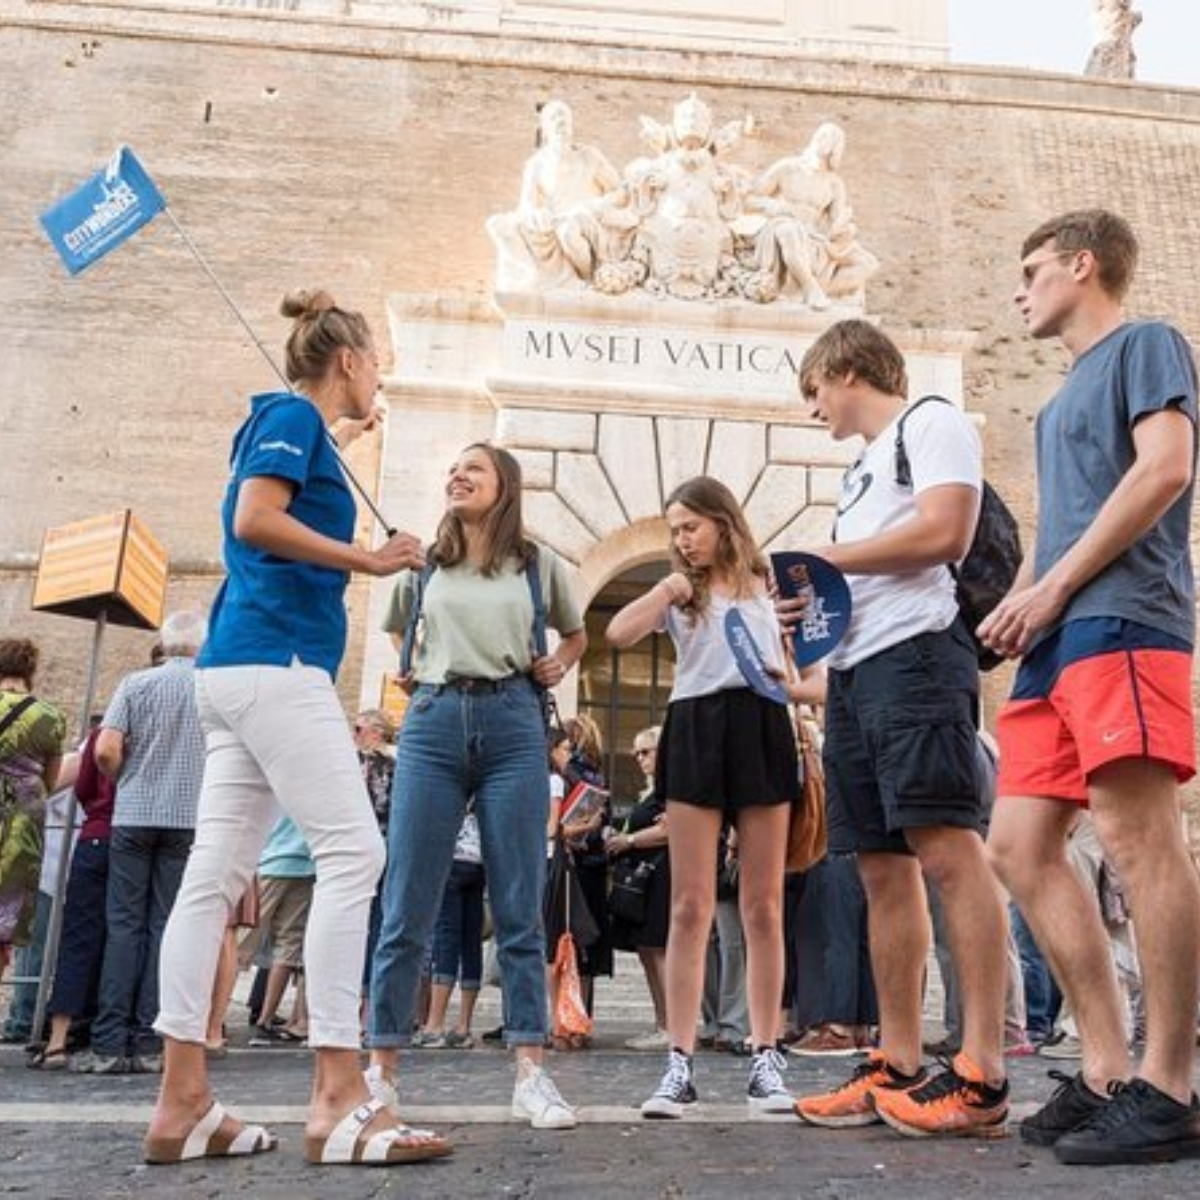 Skip the Line: Vatican Museums Small-Group Tour including Sistine Chapel and St Peter's Basilica Images